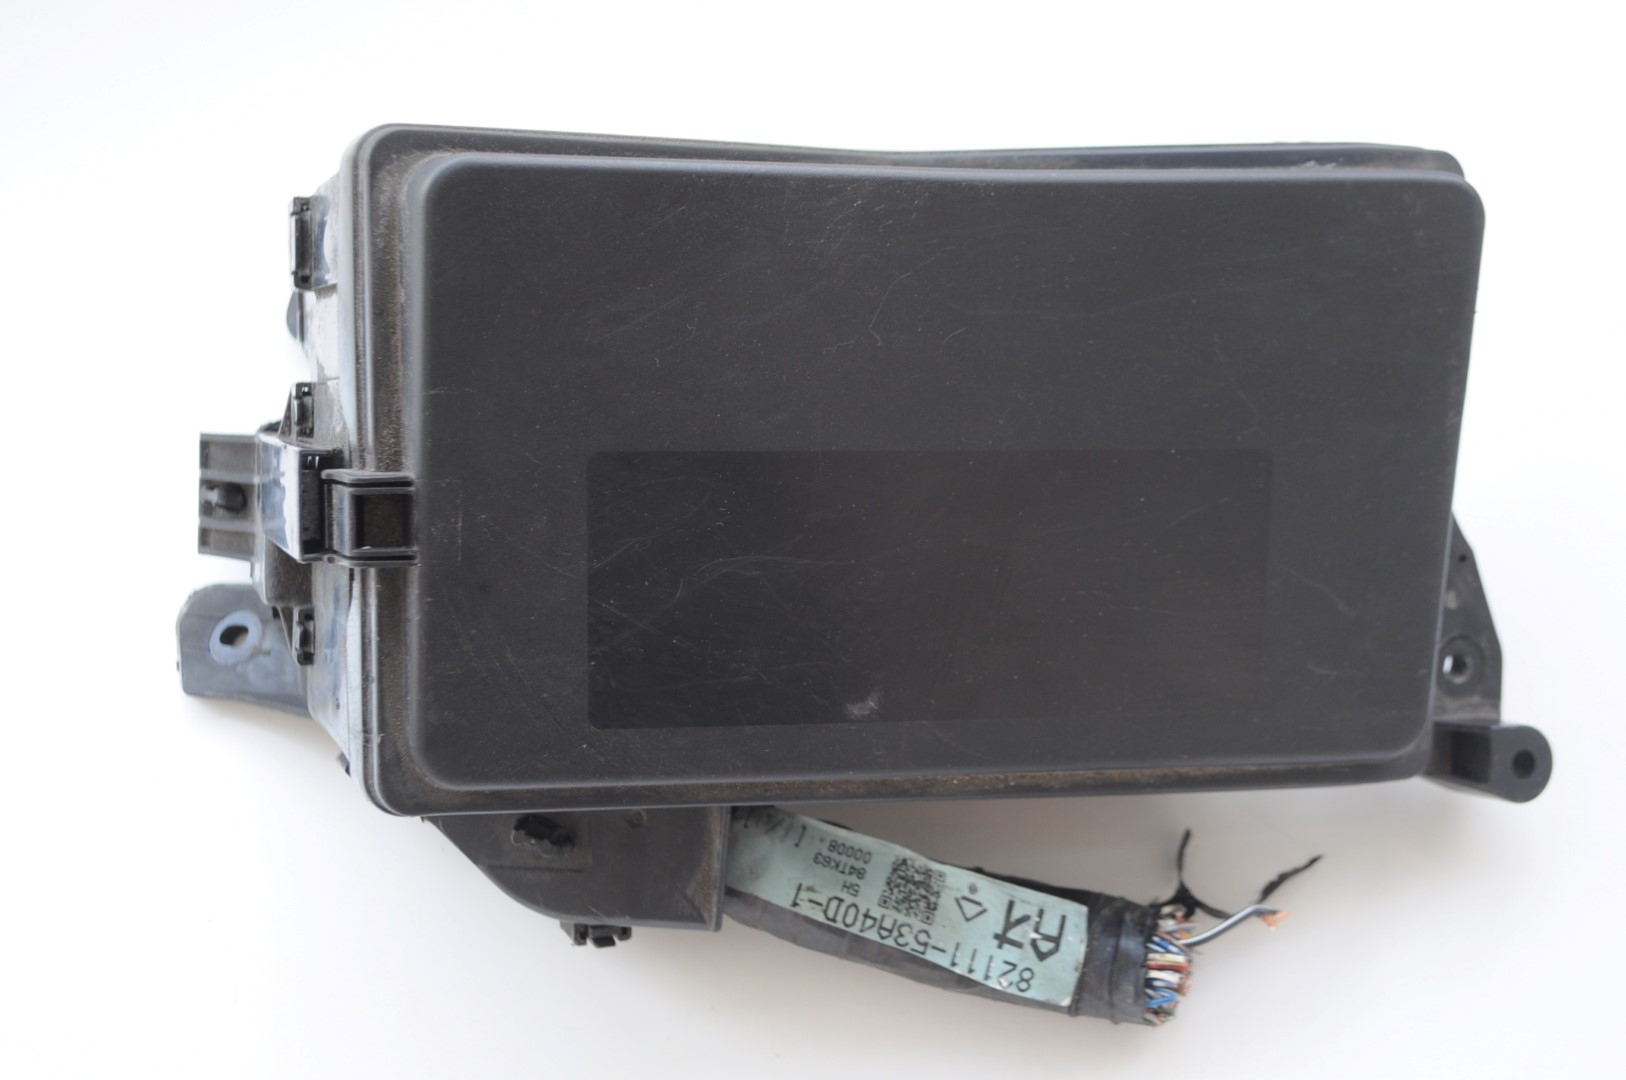 LEXUS IS 250 II 2.5 PETROL 2007 FUSE BOX RELAY WITH FUSES 82662-53080